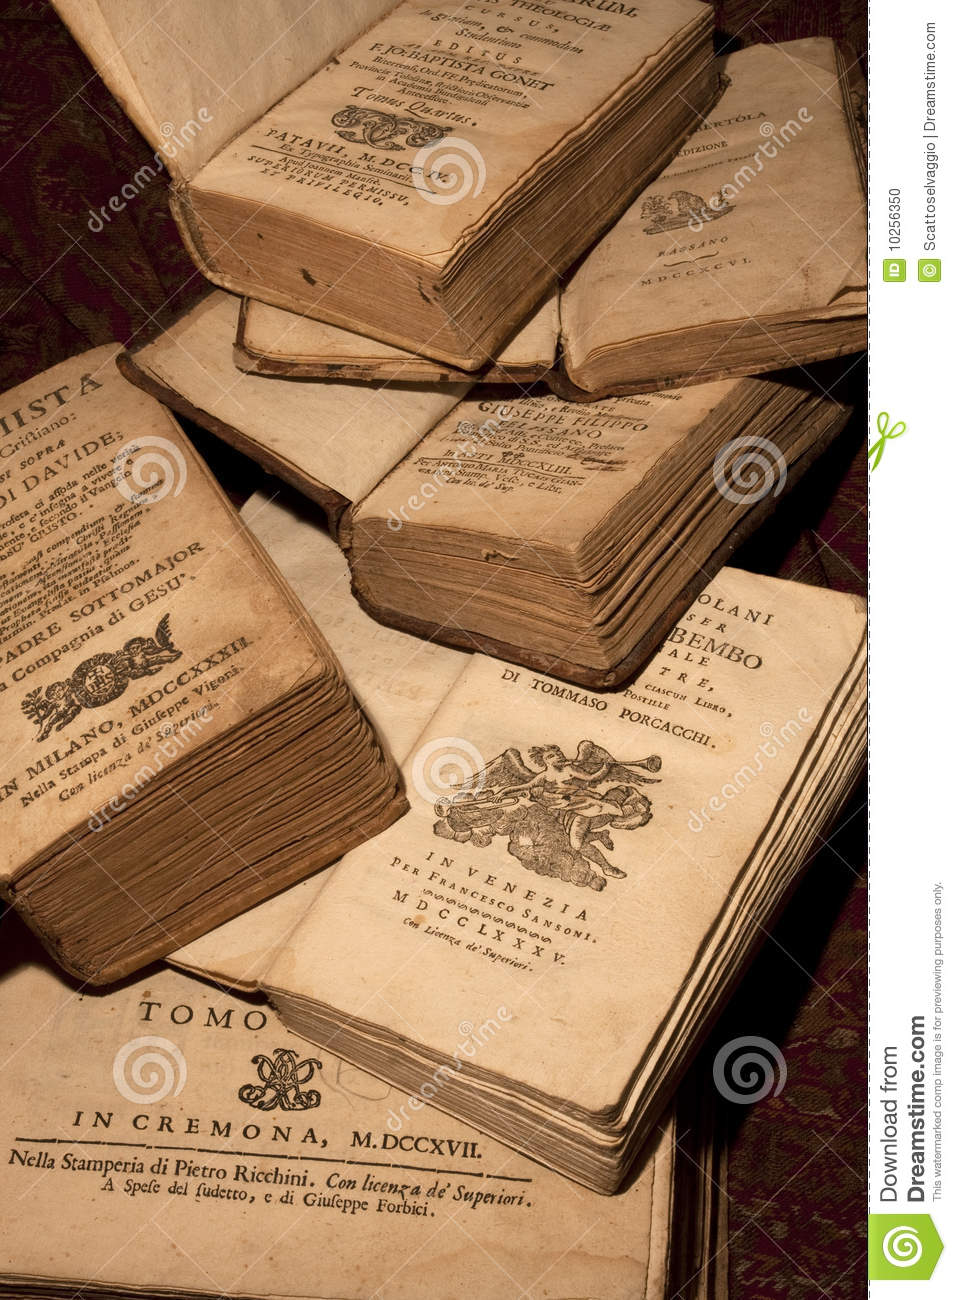 Ancient books of the 18th century. Some ancient books printed in Italy from 1700 to 1800.